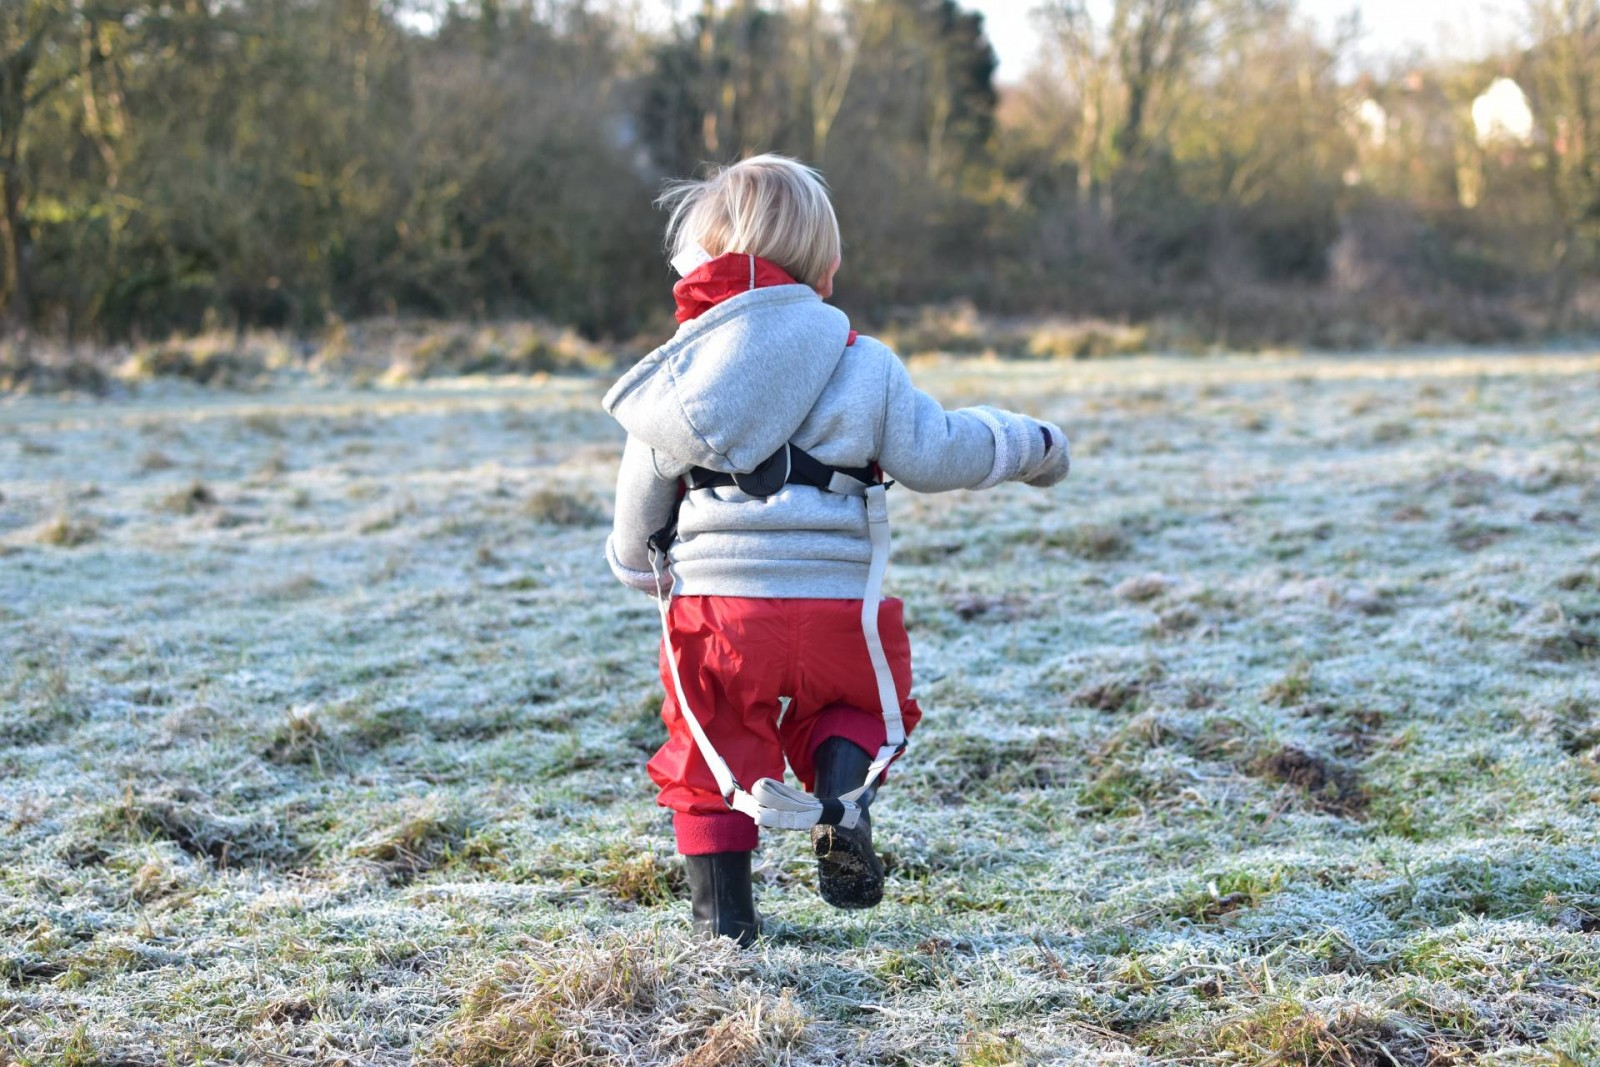 Just a normal day for a lively toddler and how choosing the right nappies is essential